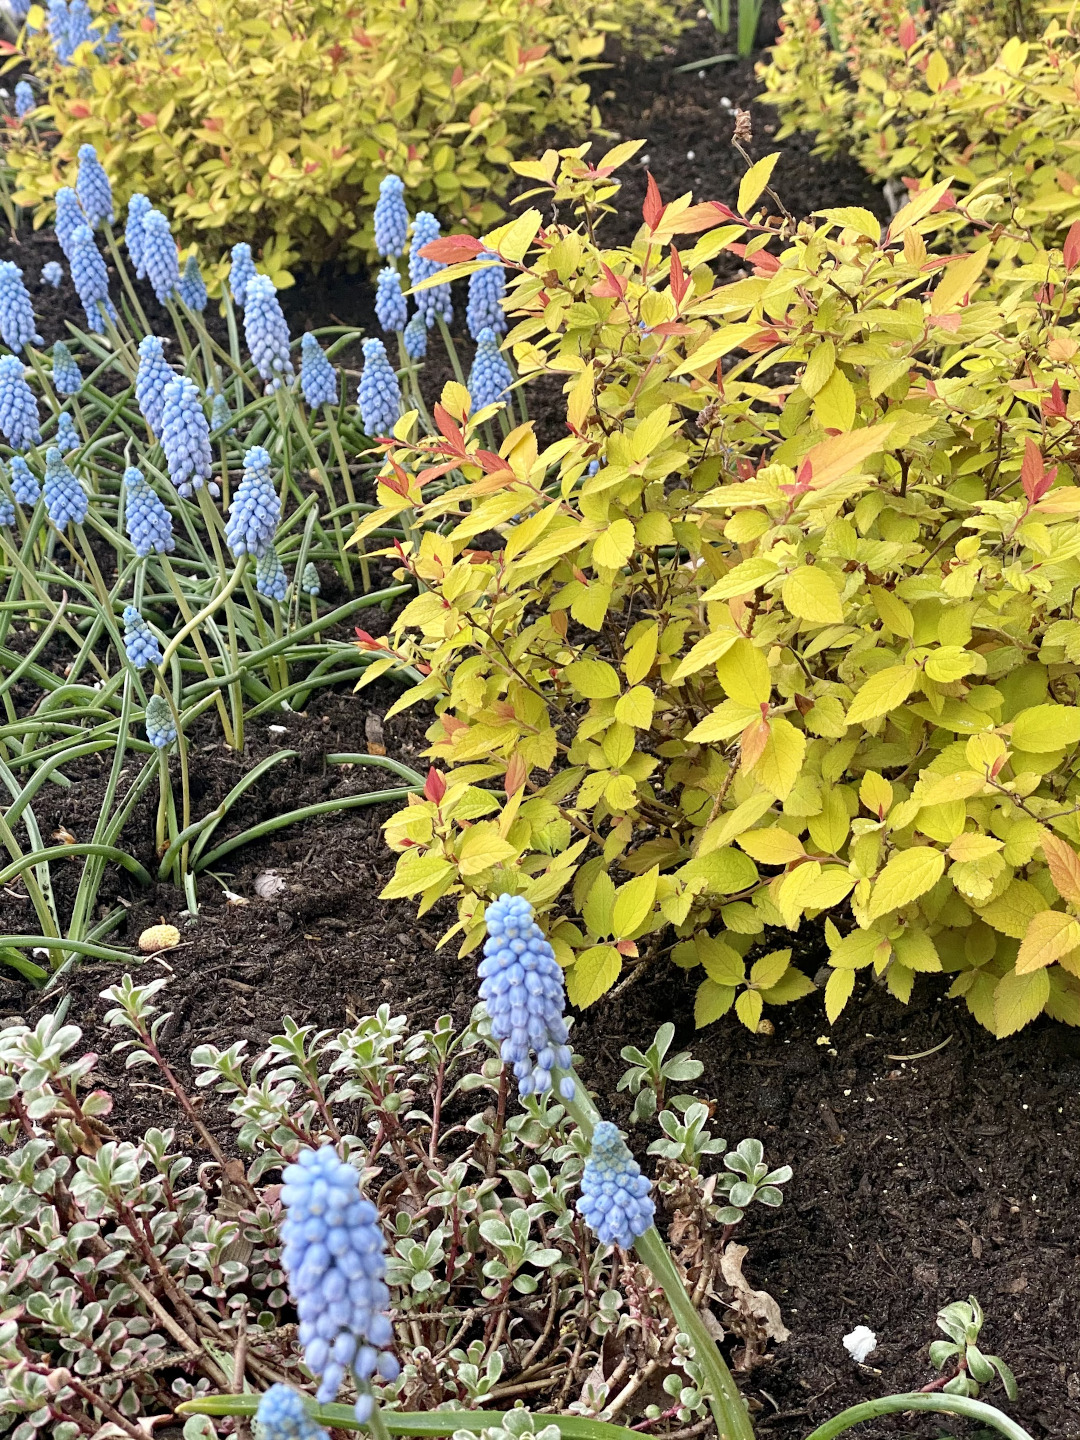 blue flowers with a yellow-leaved shrub